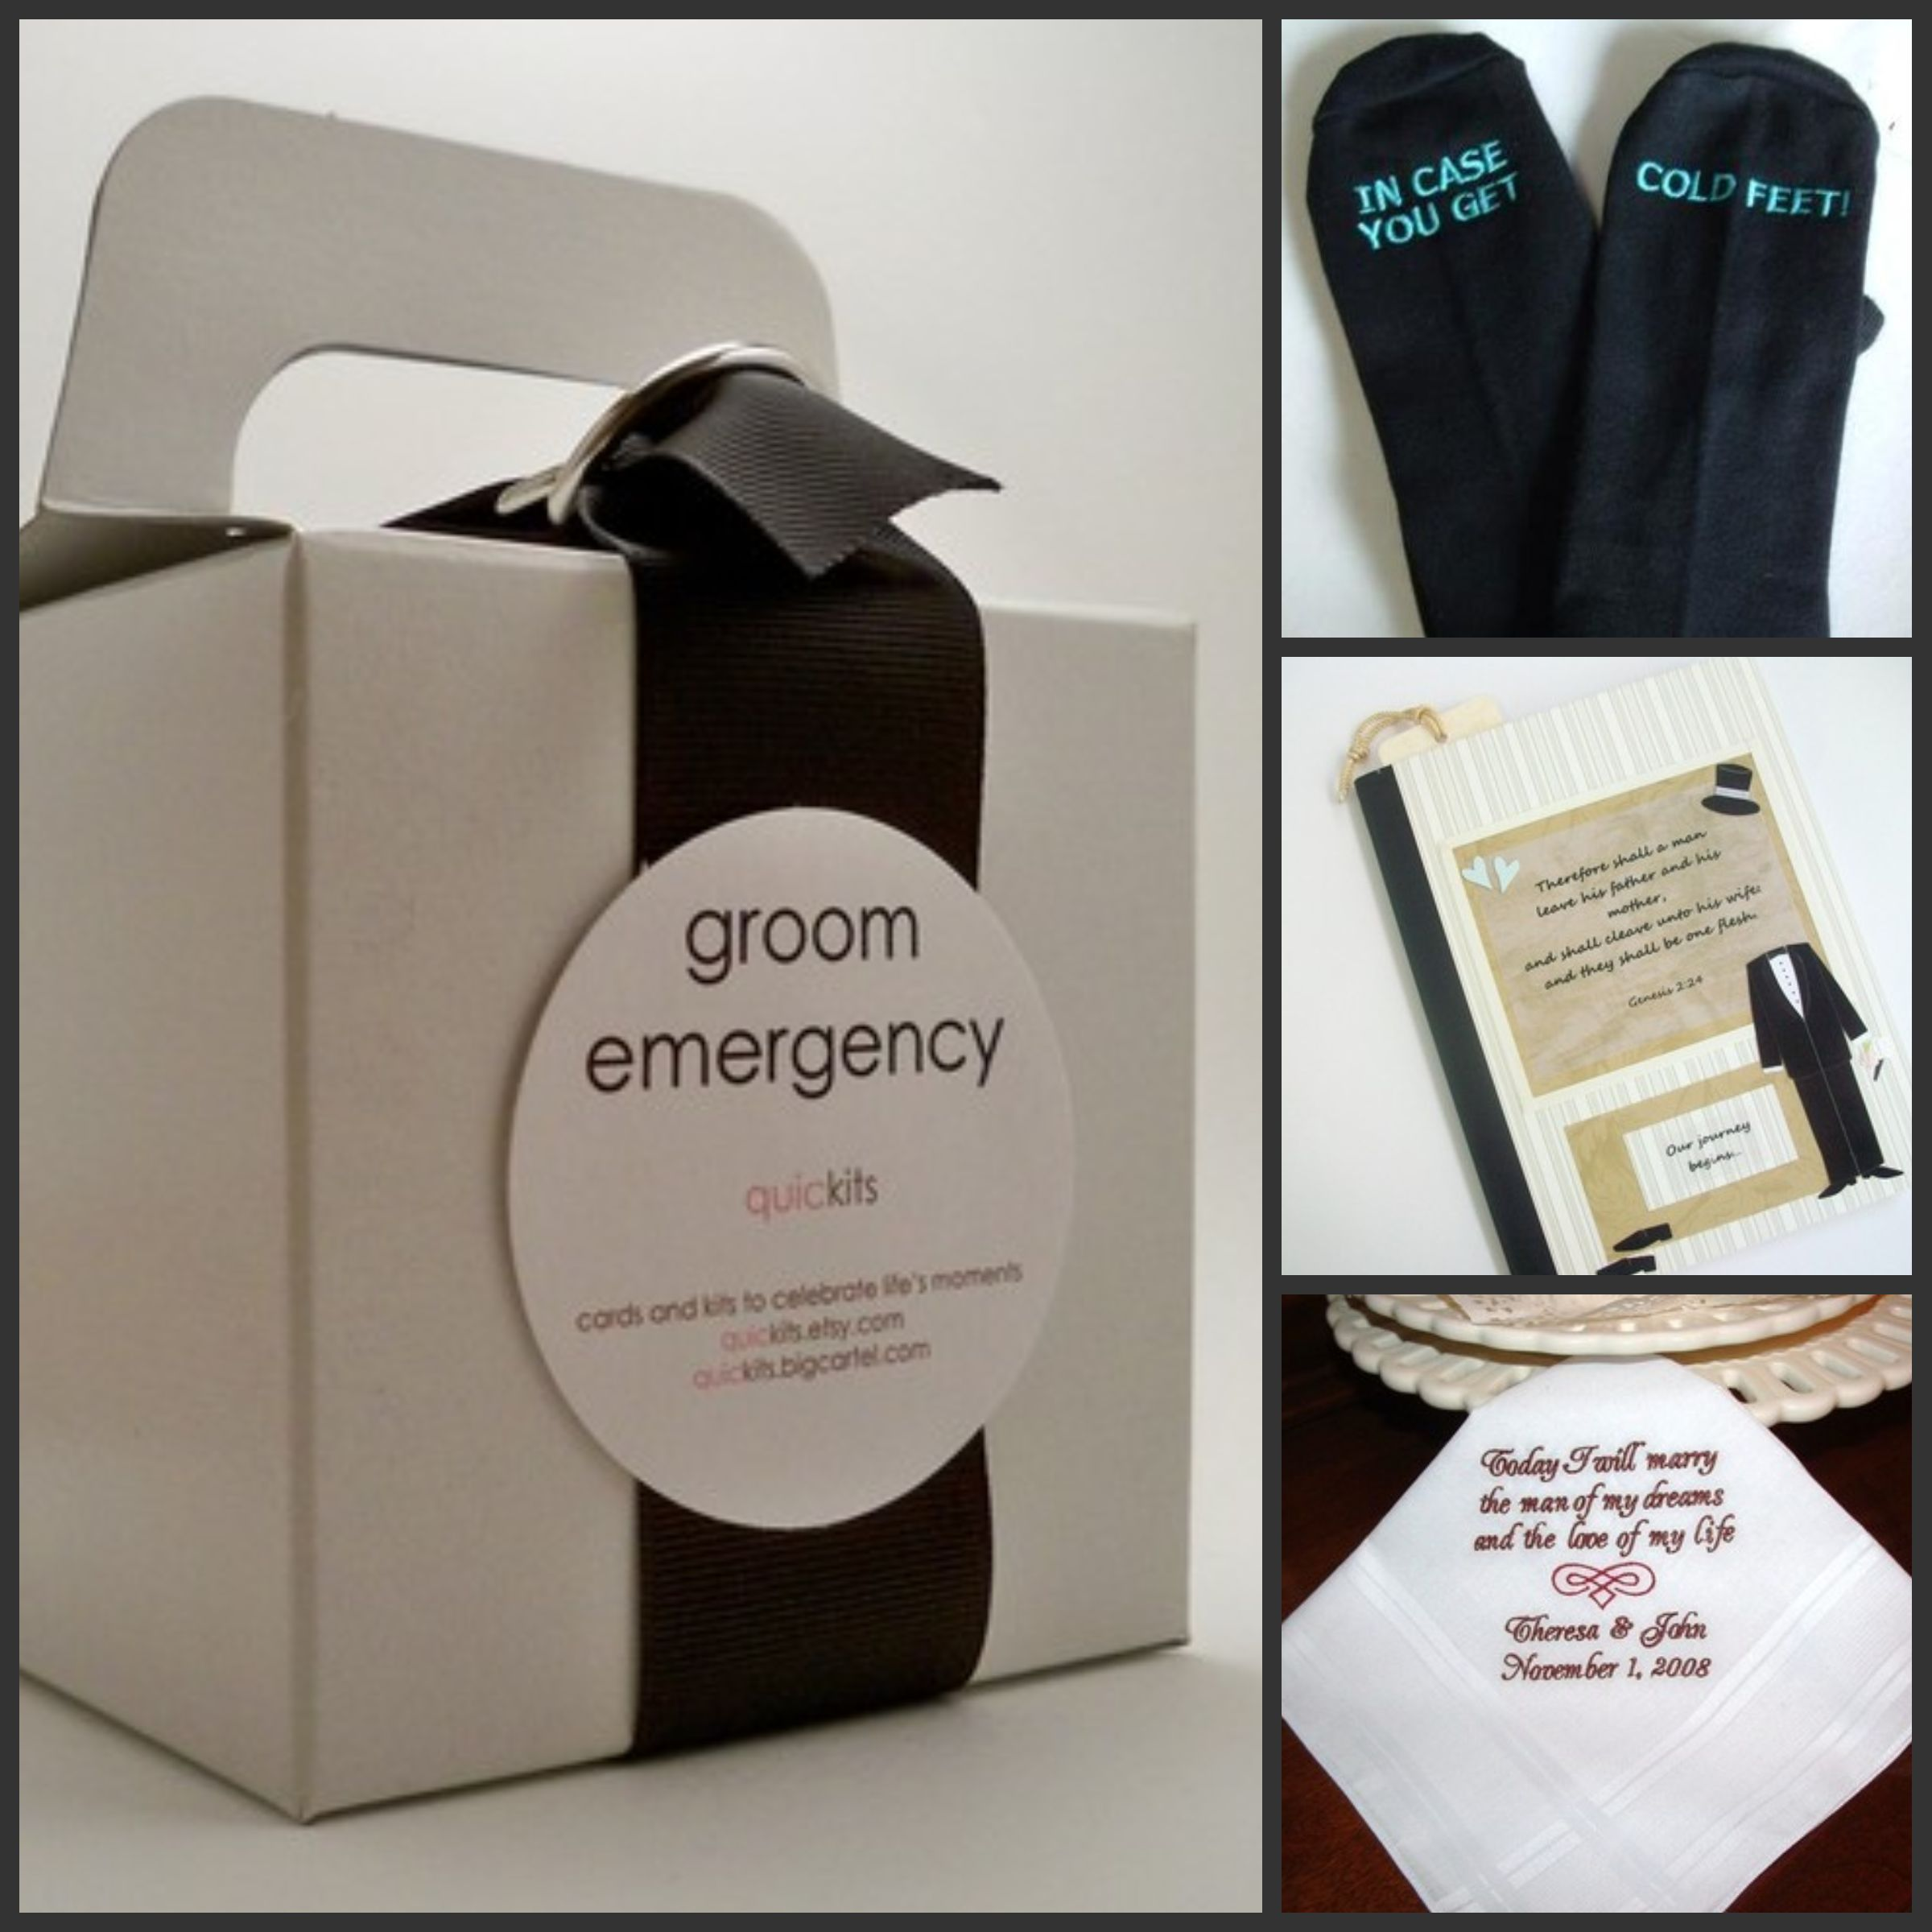 Wedding Gift For Groom From Best Man : personal gifts for your groom clockwise from left groom emergency kit ...